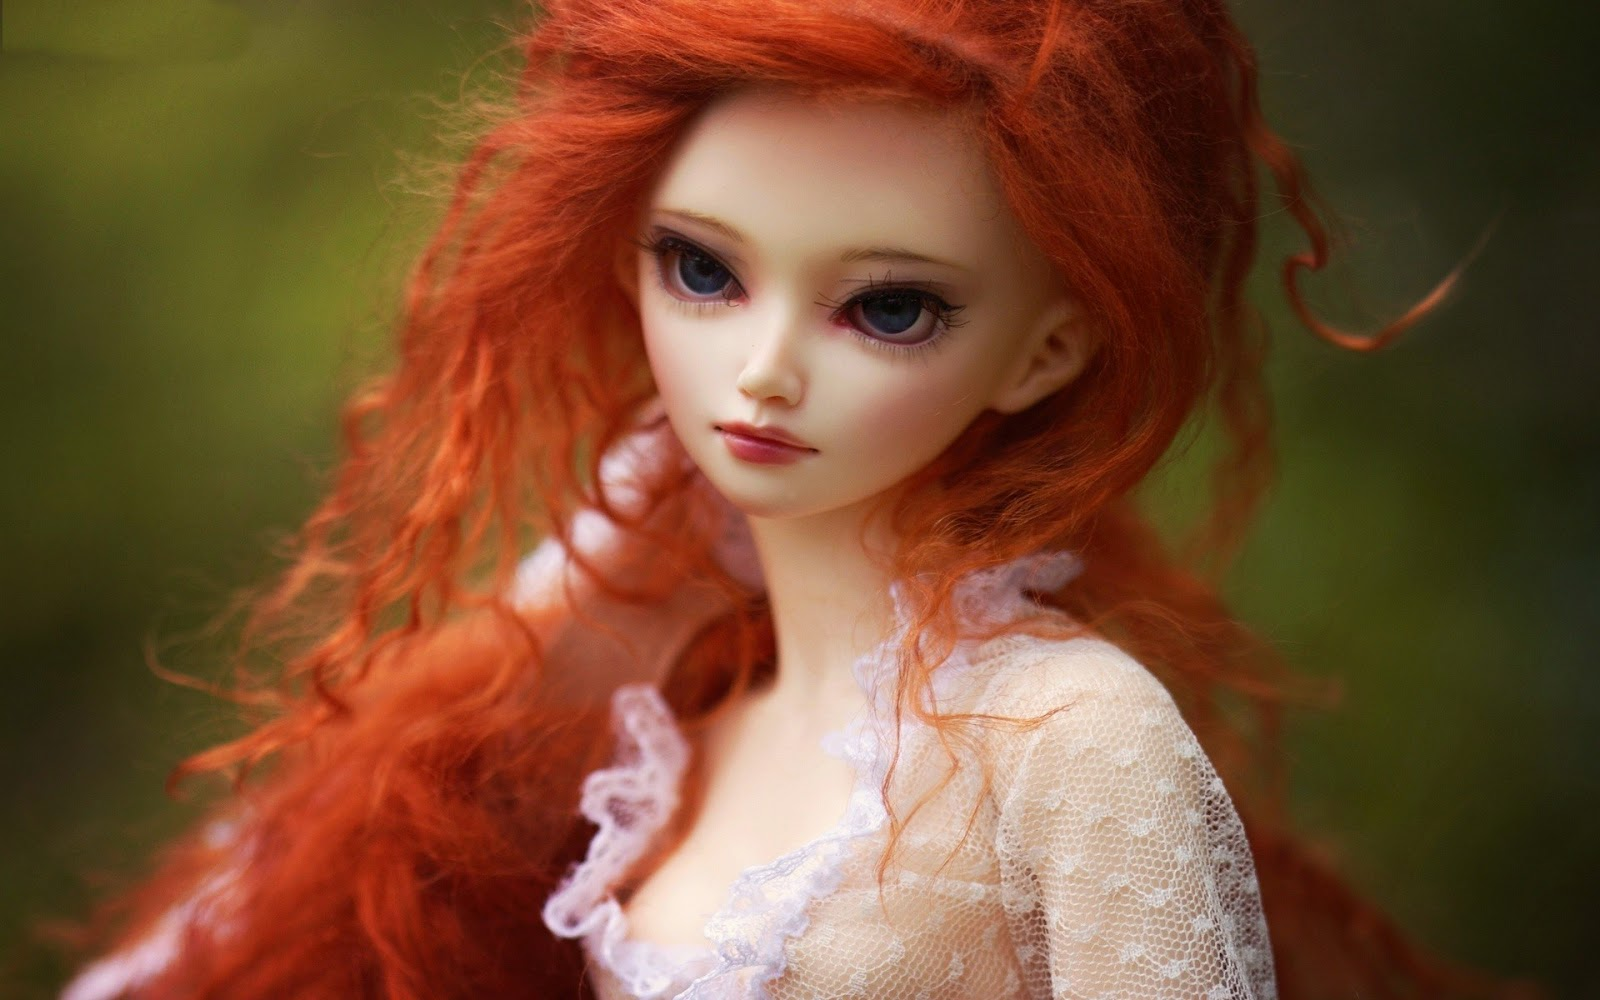 Cute doll best wallpapers 4 you - Pics cute dolls ...